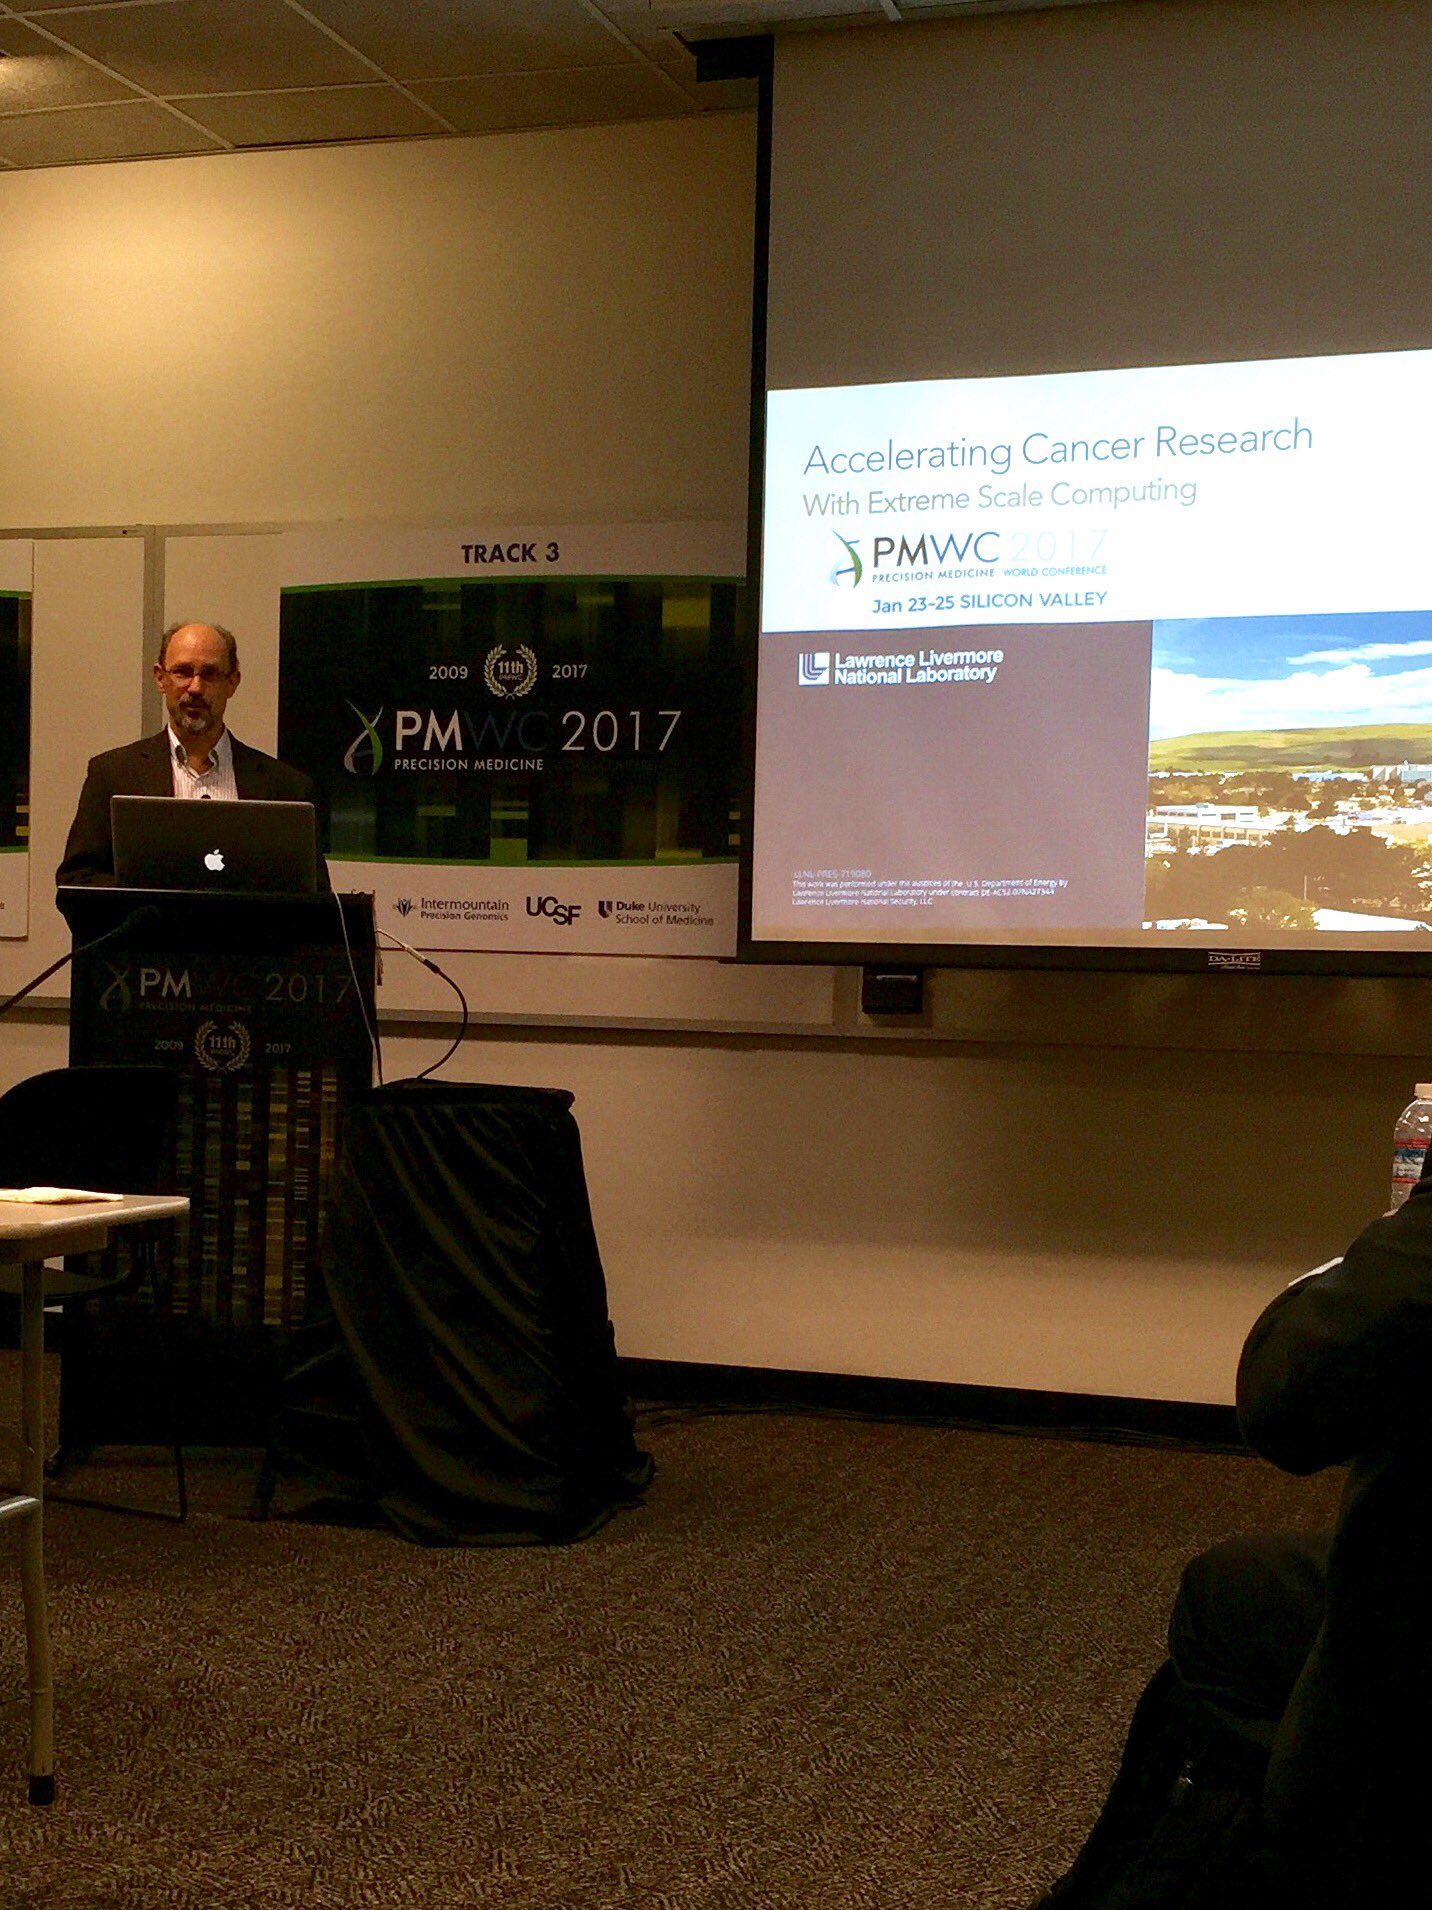 Predictive simulations-quantitative and actionable-possible with @Livermore_Lab supercomputers. @HPC_Innovate #PMWC17 https://t.co/I8sSxMYQsl